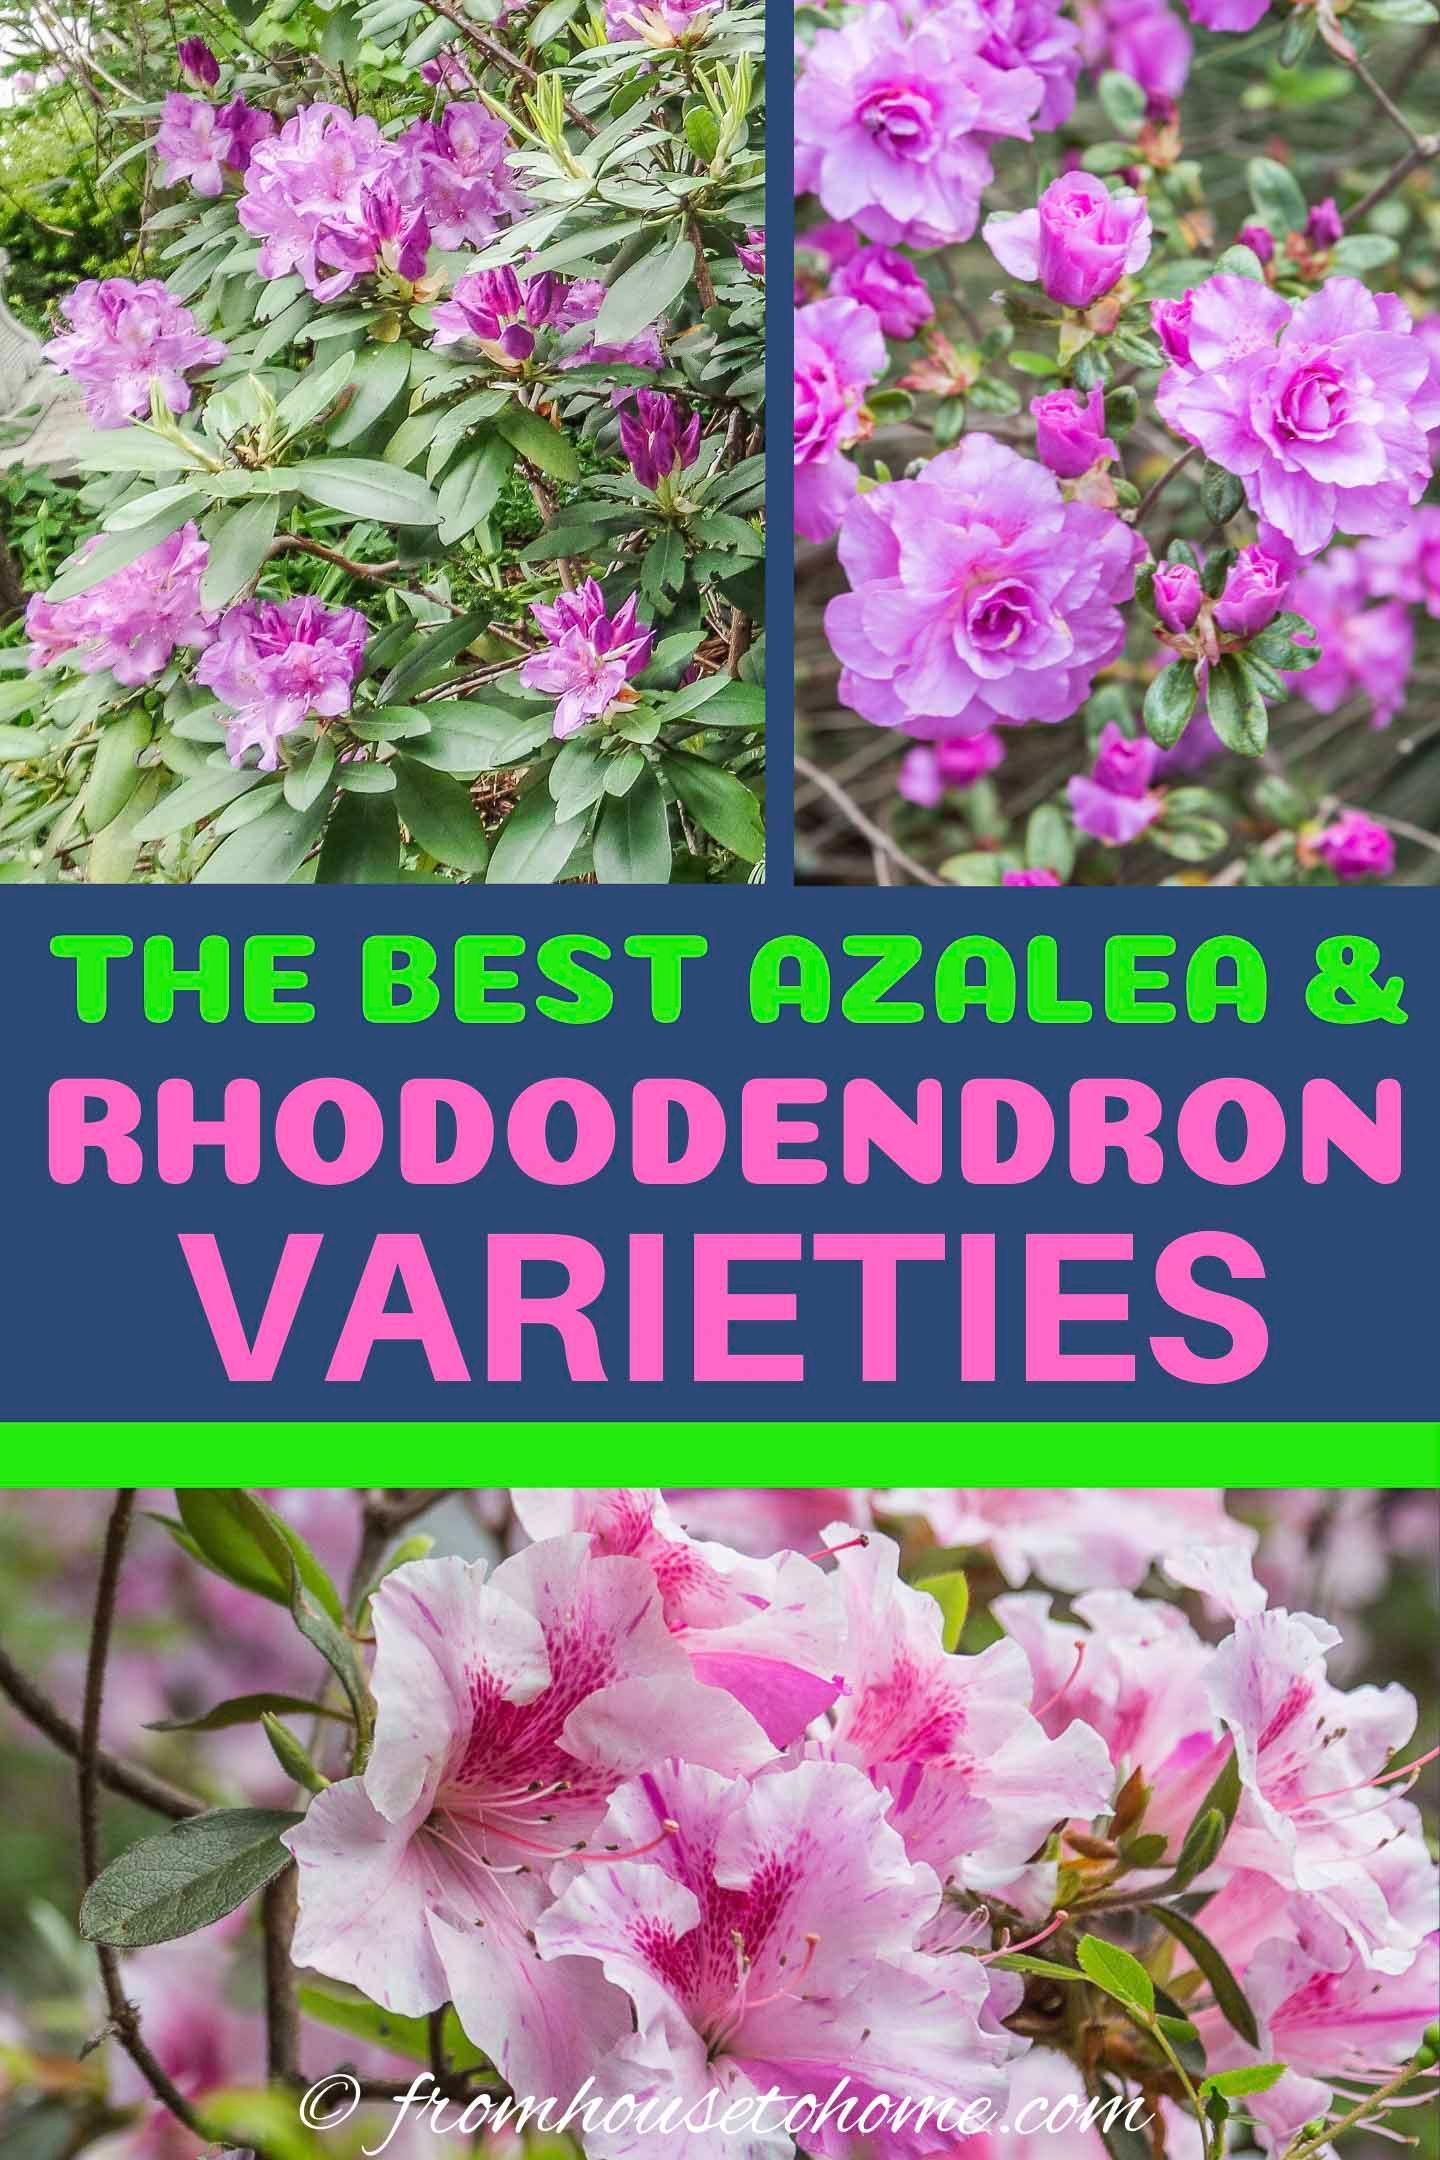 44a584ae5544cb328c583921f2841008 - Best Gardens For Azaleas And Rhododendrons